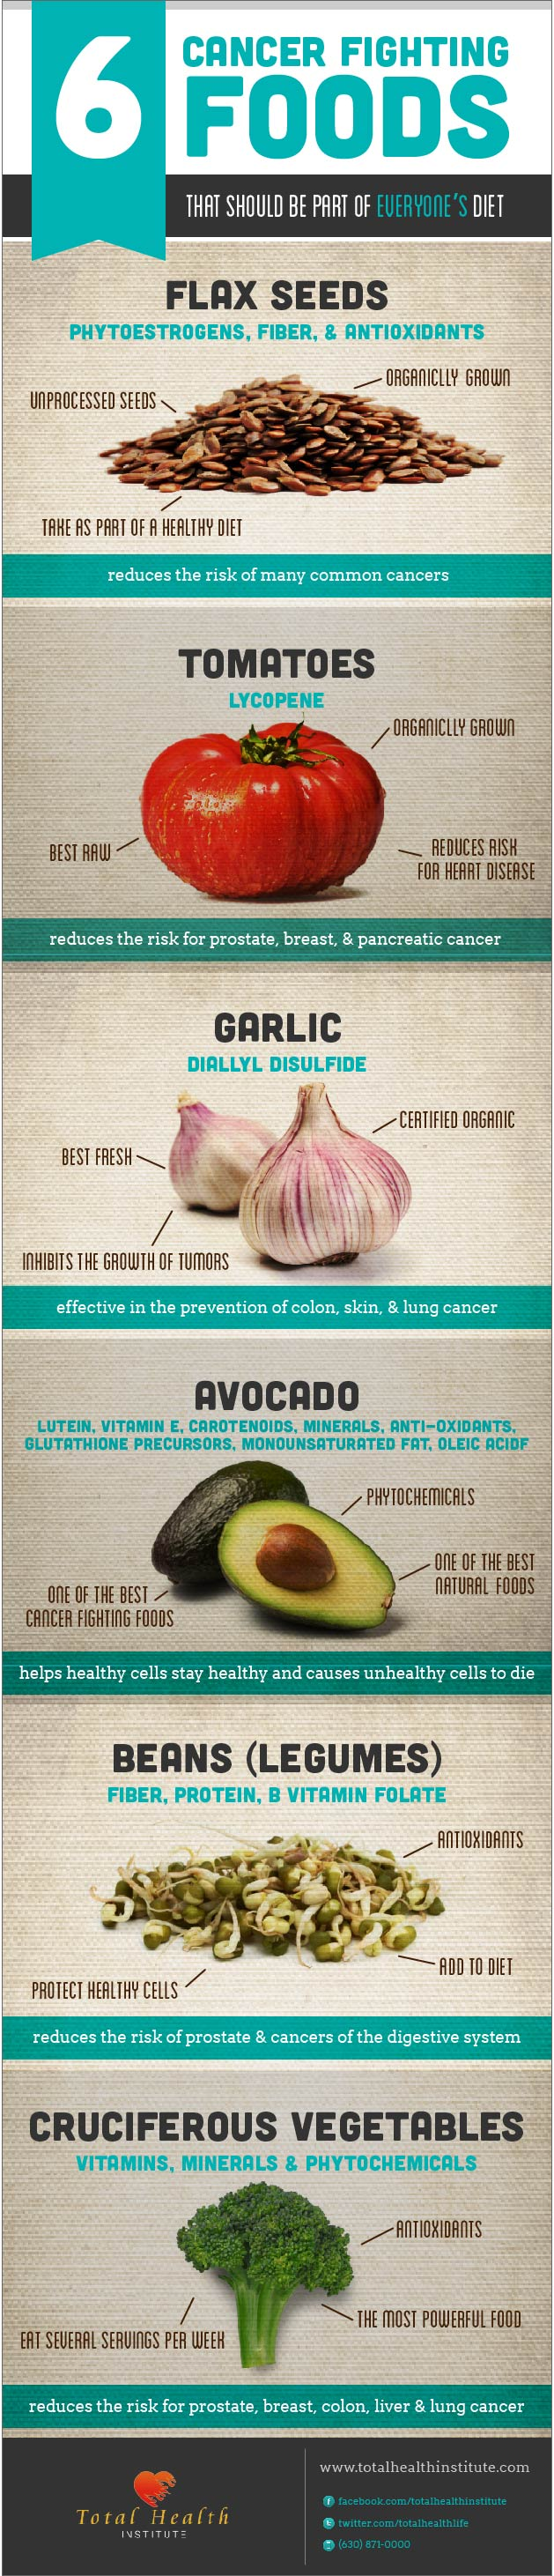 6-cancer-foods-infographic